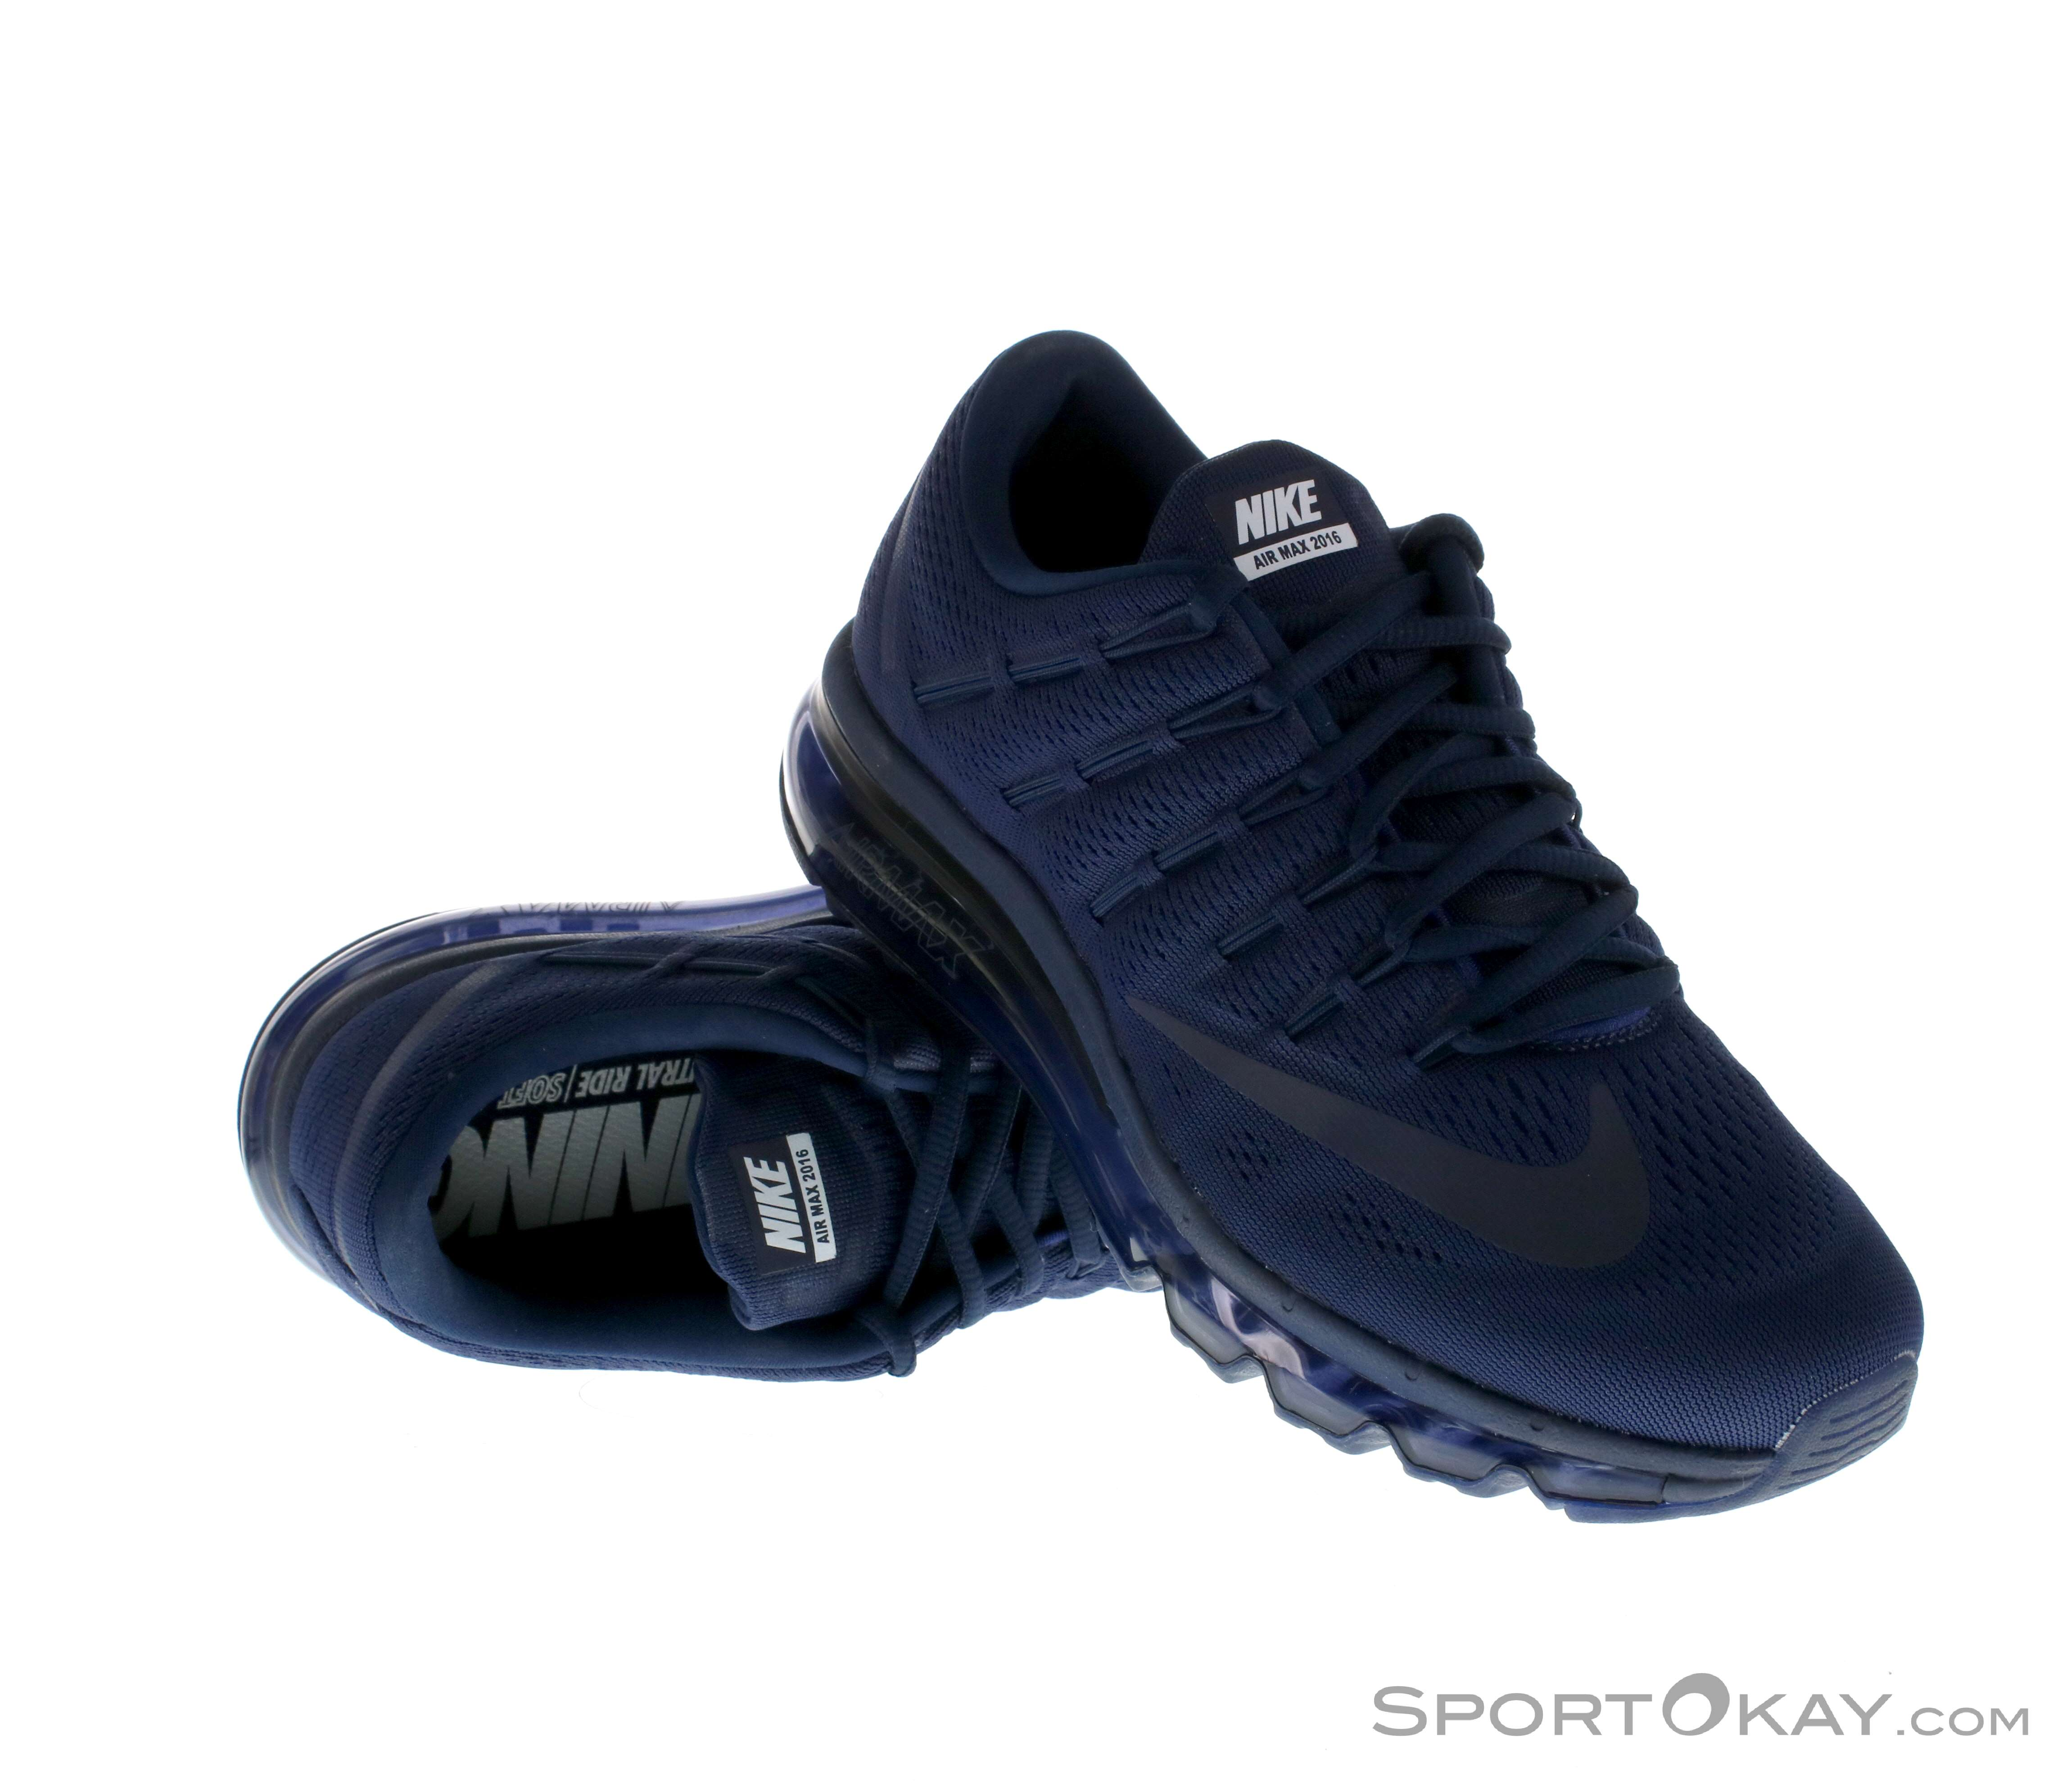 new product 23b89 8bb9b Nike Air Max 2016 Mens Running Shoes, Nike, Blue, , Male, 0026